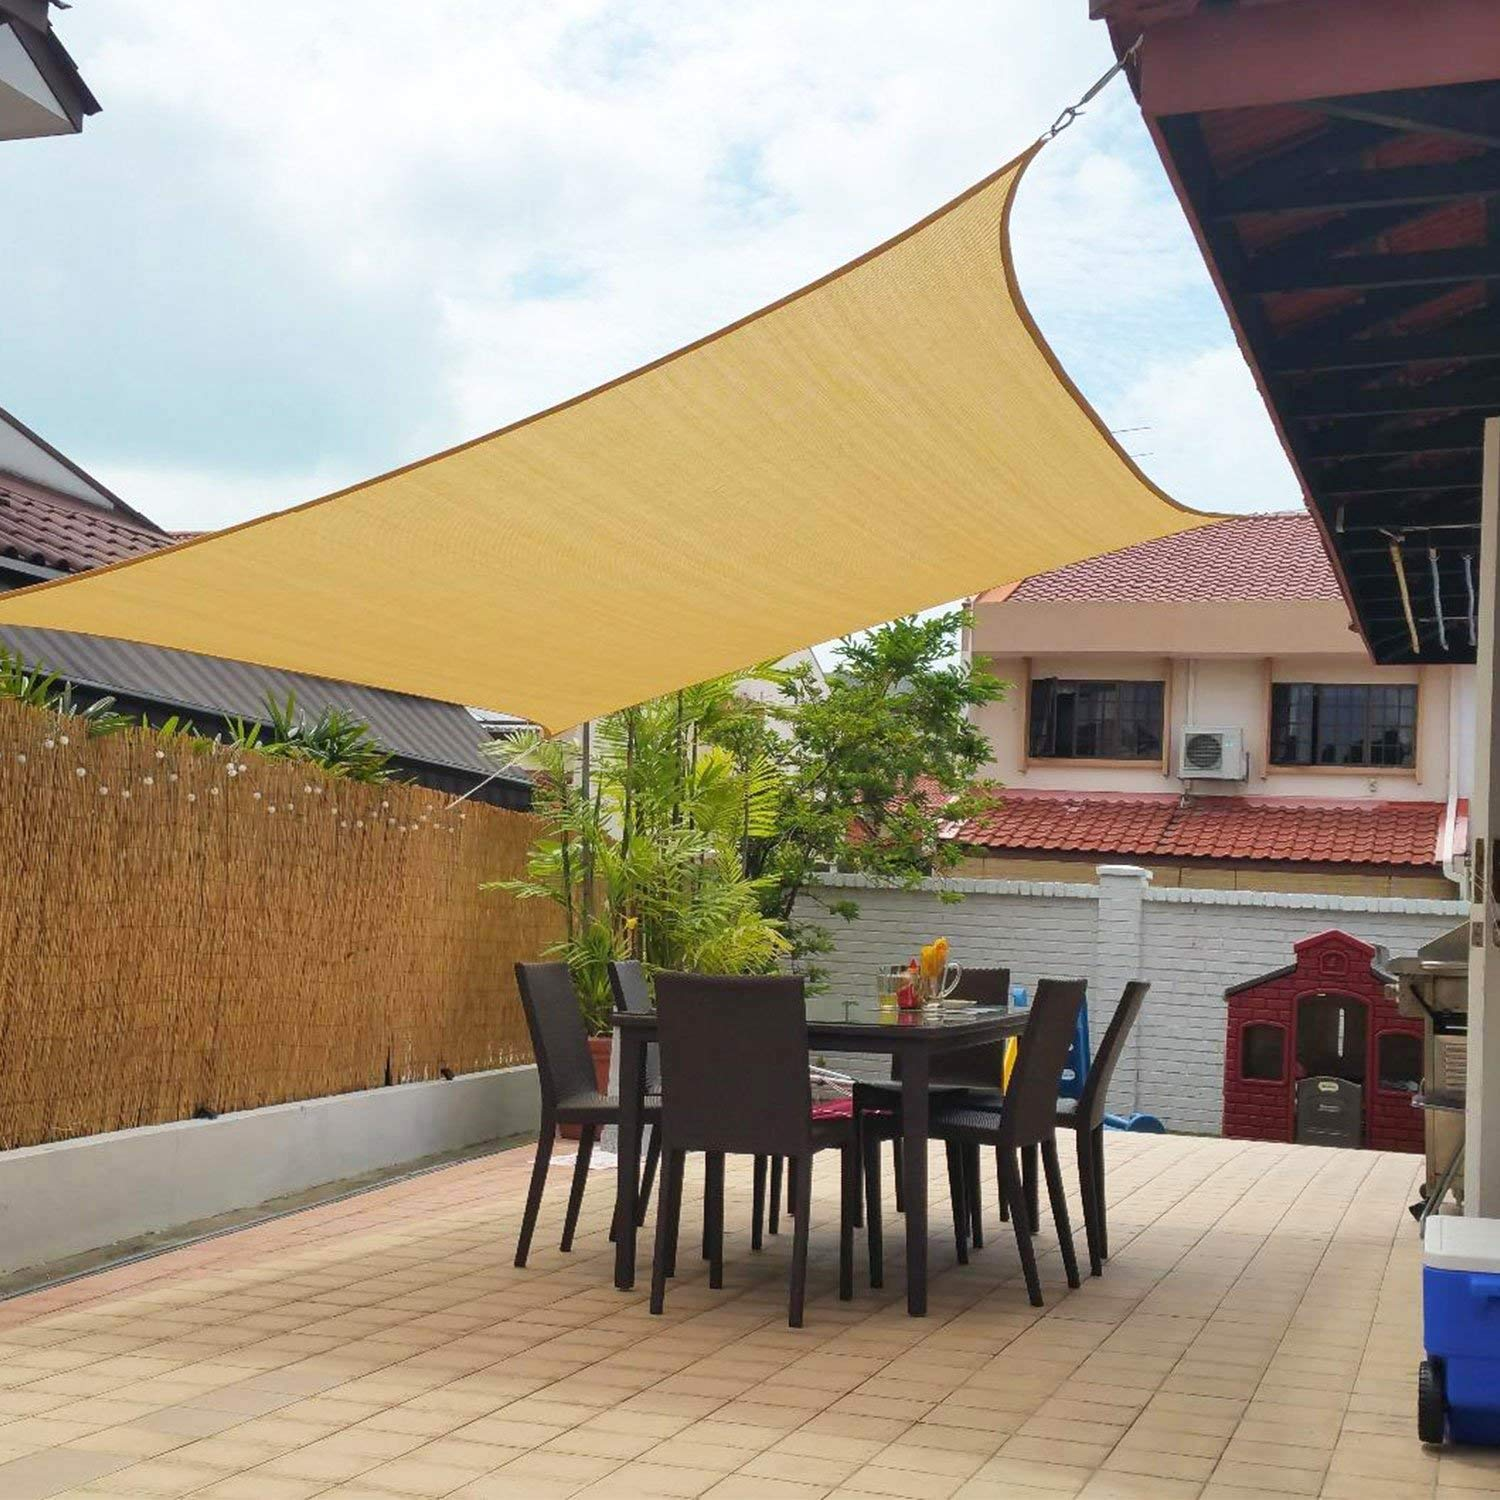 10' x 13' Sun Shade Sails Canopy Rectangle Sand, 185GSM Shade Sail UV Block for Patio Garden Outdoor Facility and Activities by Artpuch